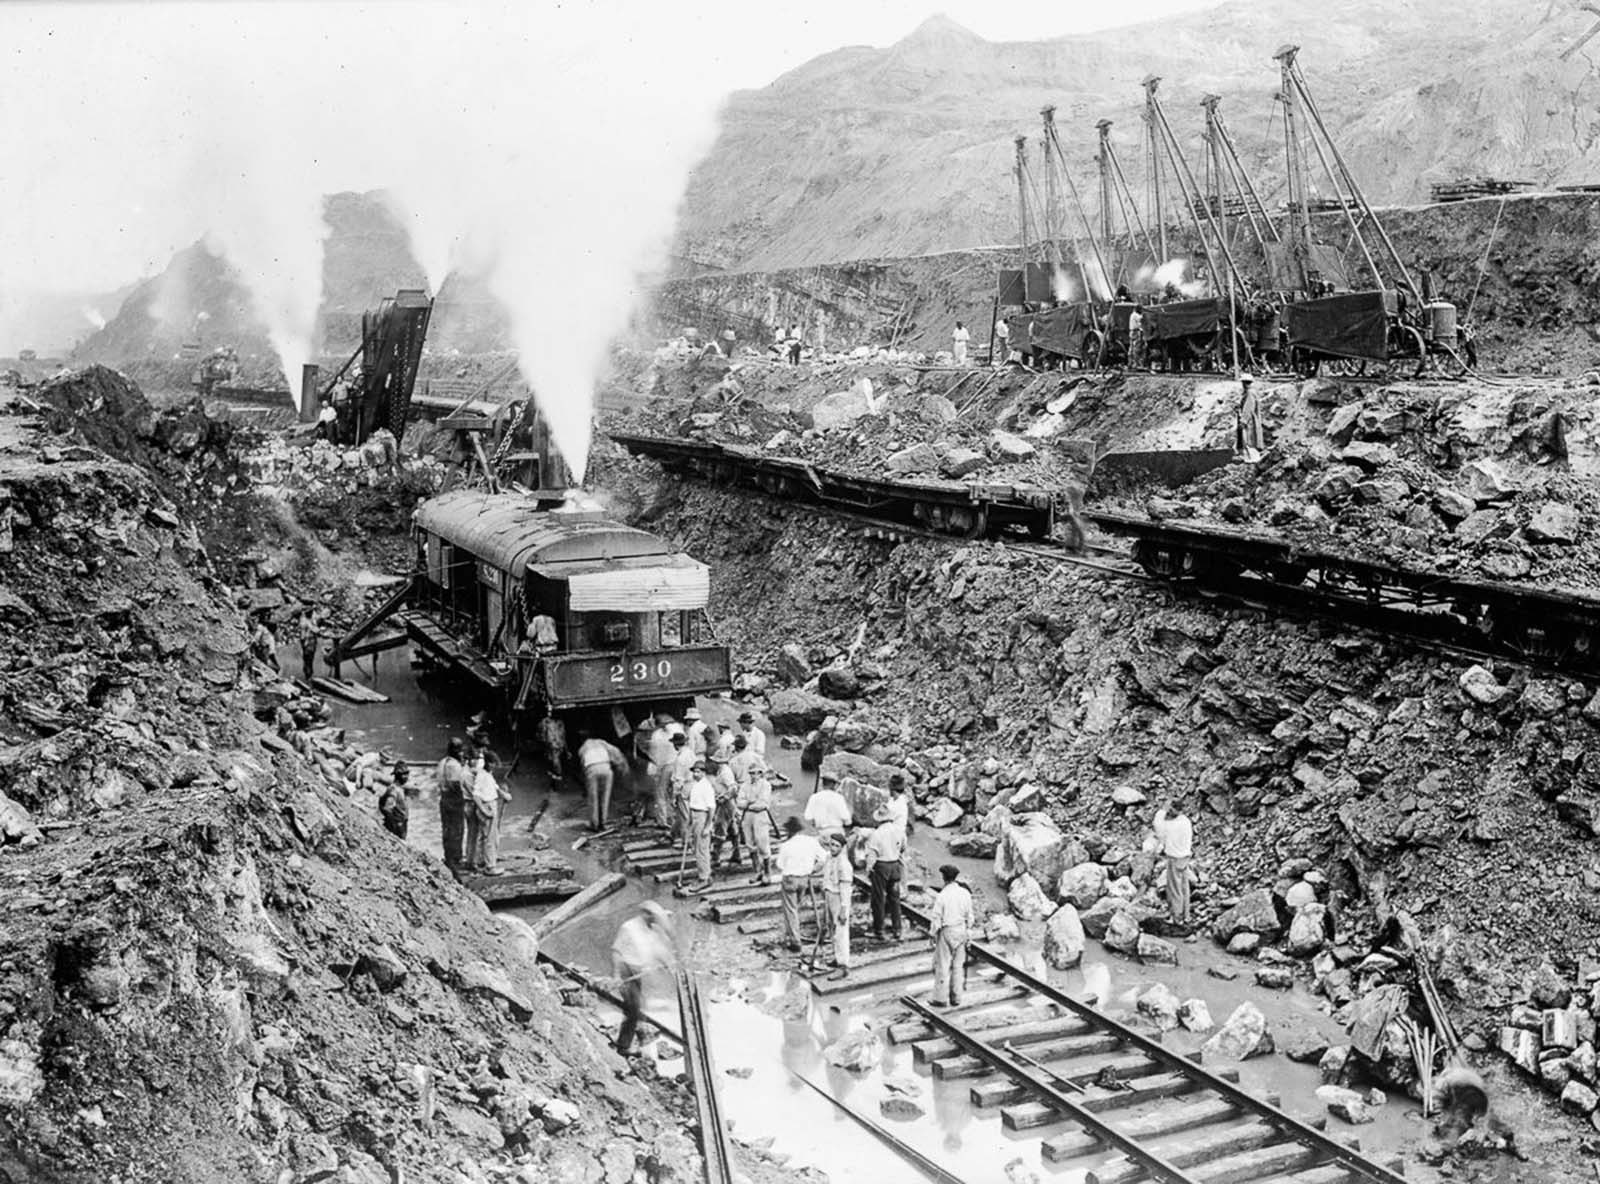 The scale of the work was massive. Six thousand men worked in the cut, drilling holes in which a total of 27,000 t (60,000,000 lb) of dynamite were placed to break up the rock (which was then removed by as many as 160 trains per day).